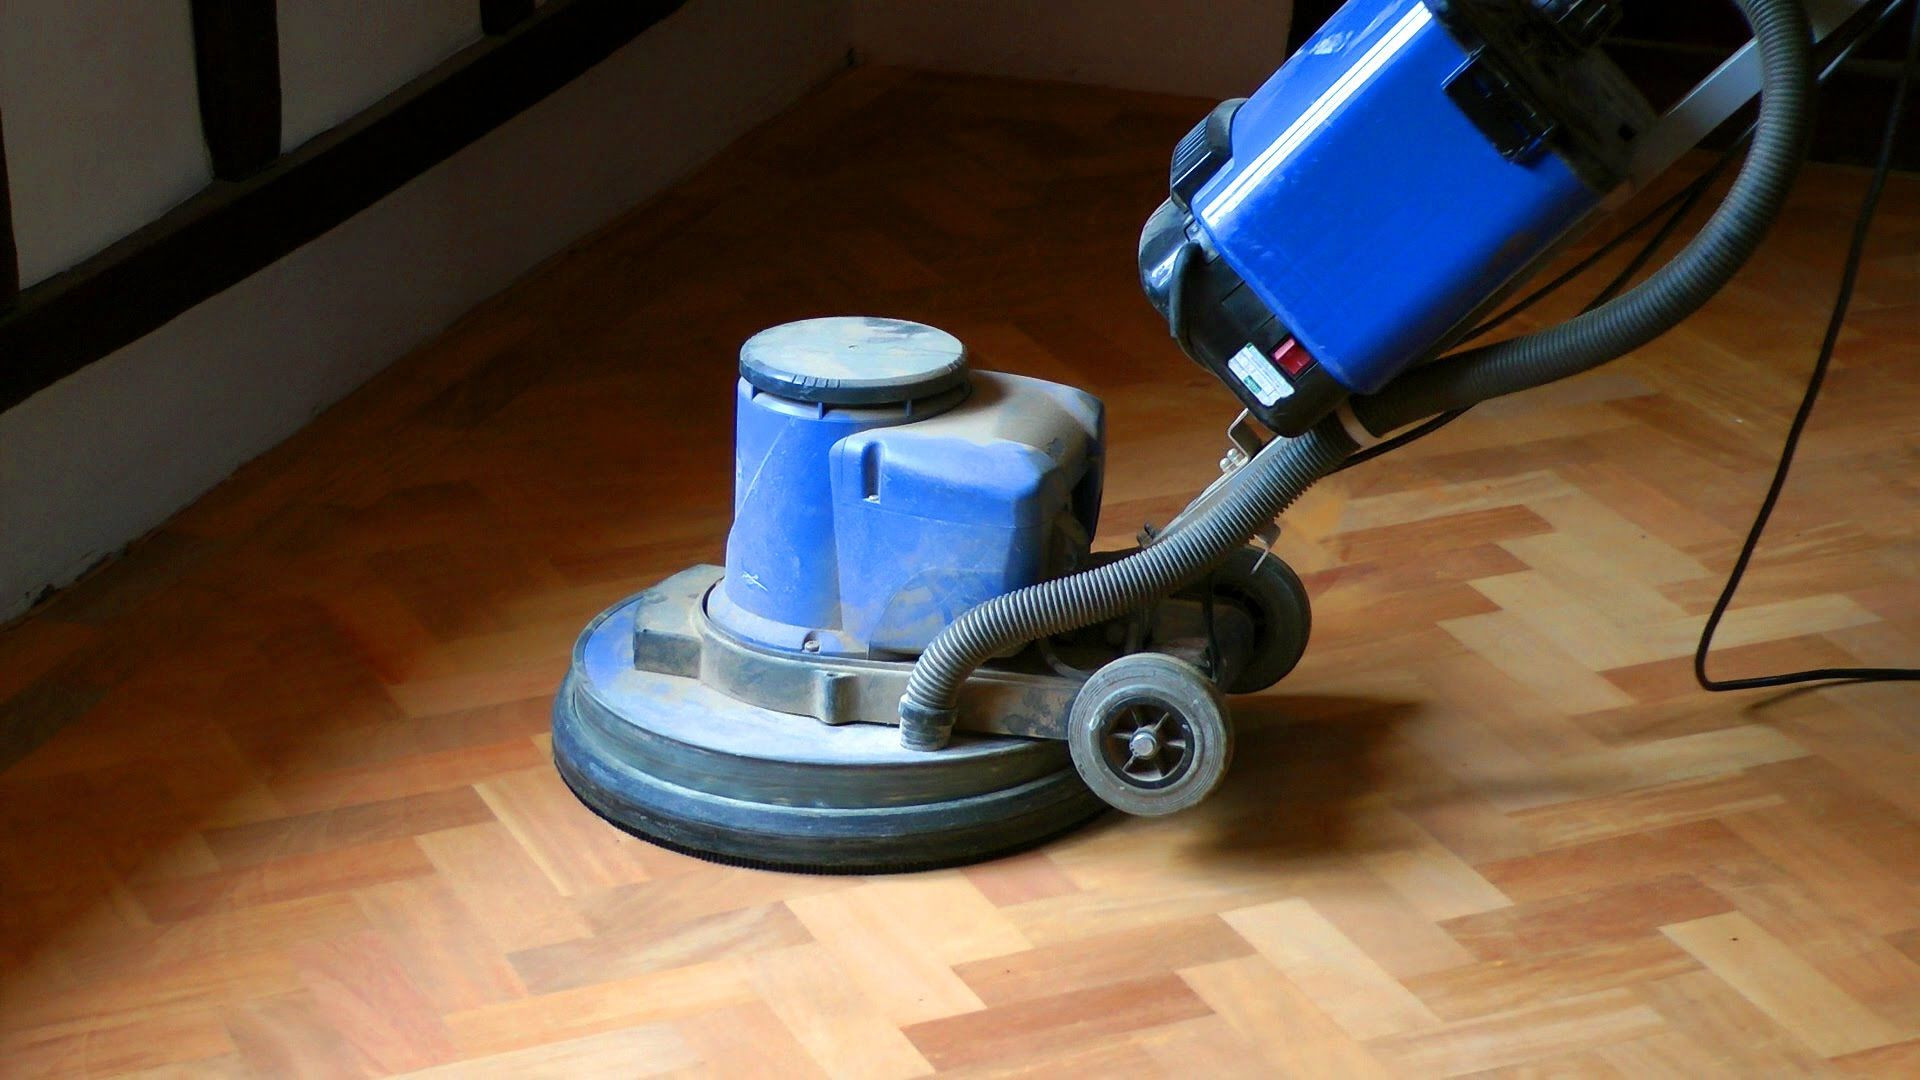 Hardwood Floor Refinishing Equipment Of Sanding and Refinishing Parquet Floors the Guide Ideas for the for Sanding and Refinishing Parquet Floors the Guide